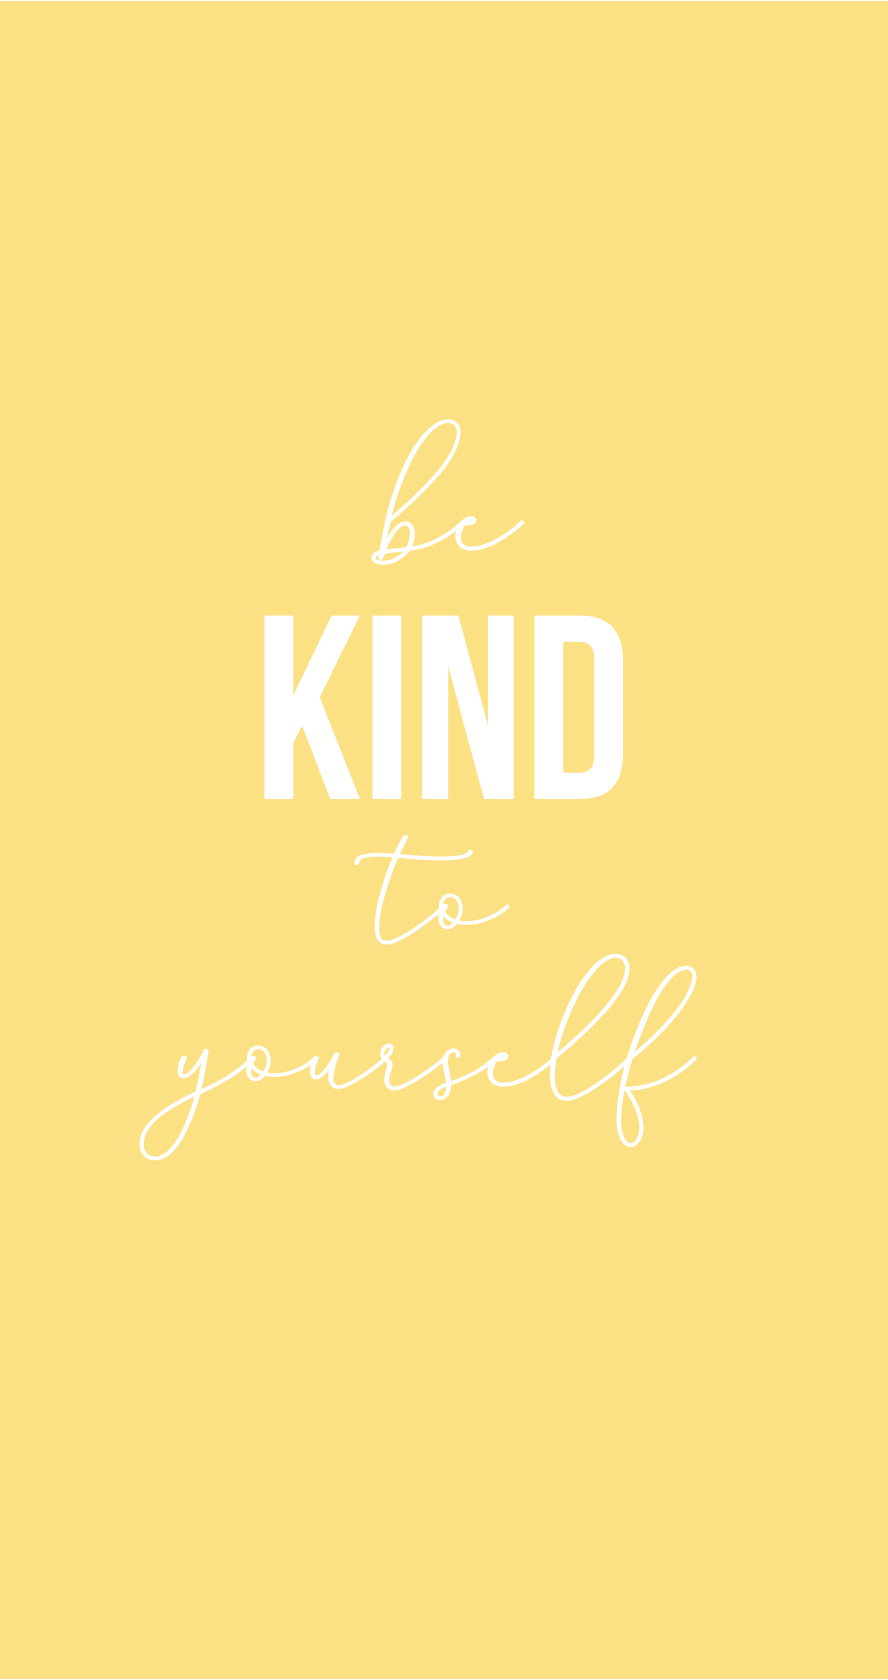 Be Kind to Yourself Wallpaper, phone lockscreen, iphone wallpaper, yellow lockscreen